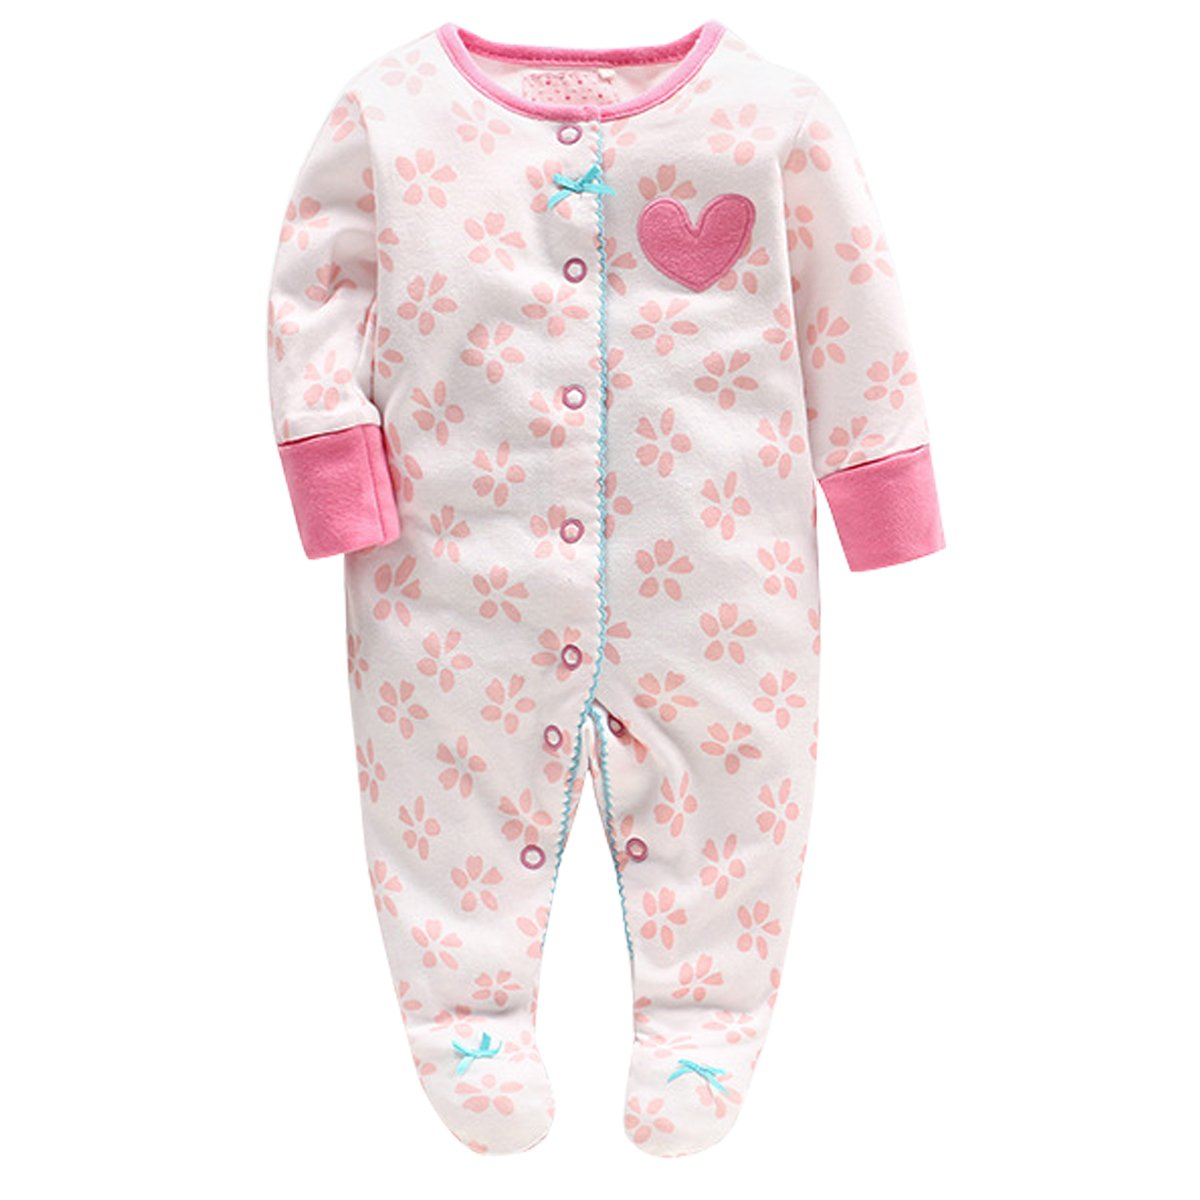 Bebone Baby Footed Sleepsuit Girls Clothes